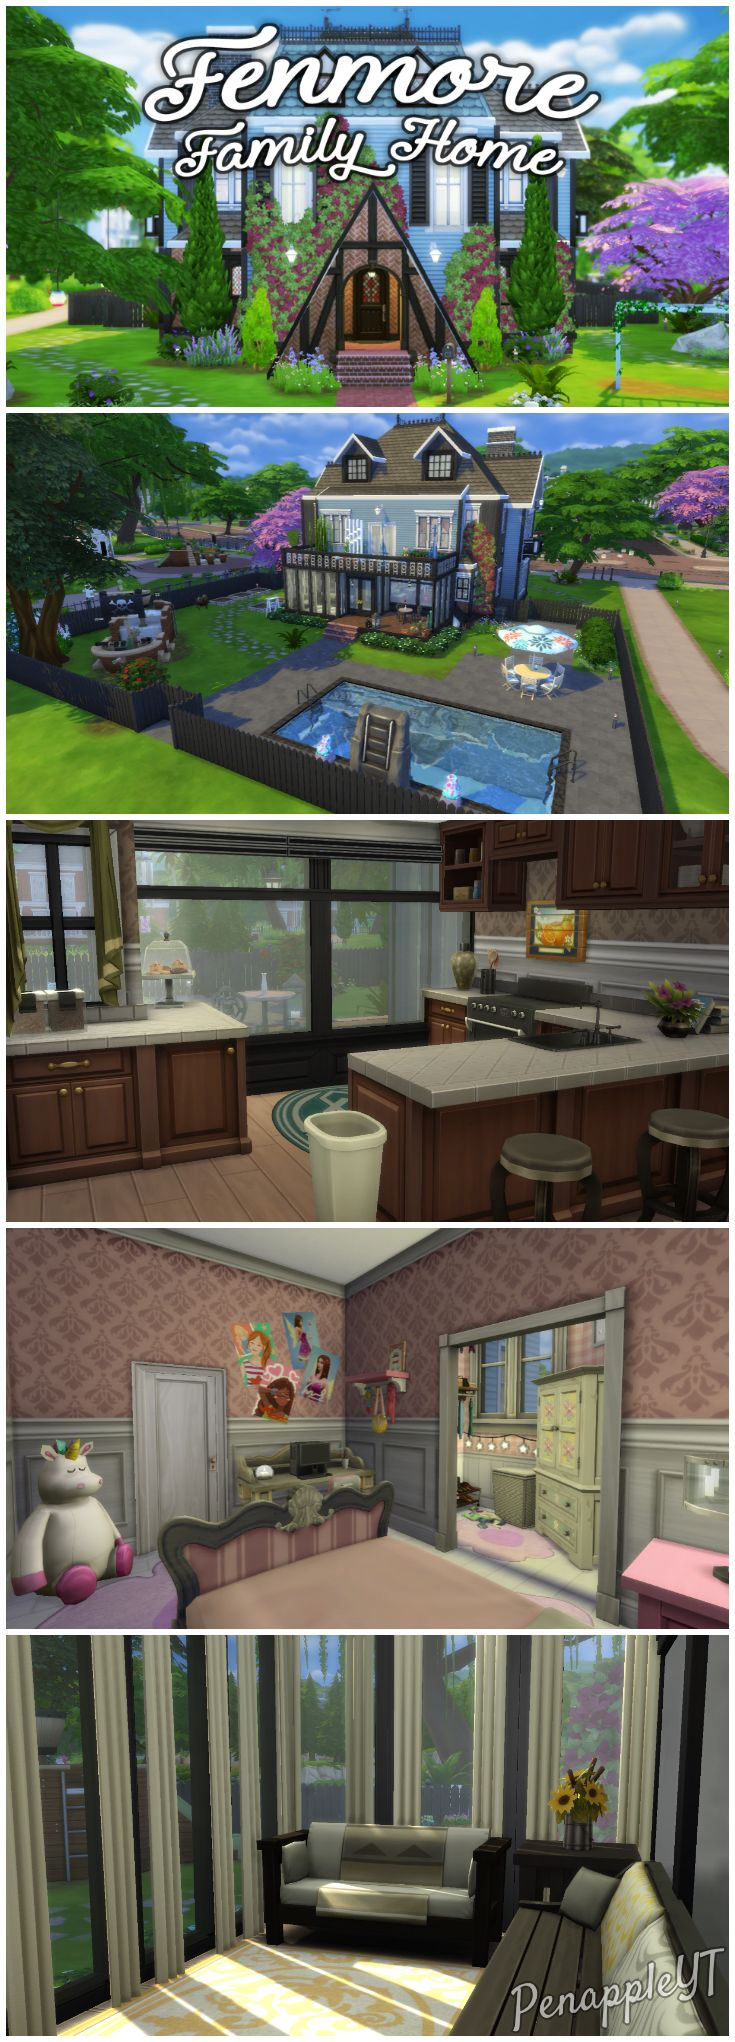 Urban treehouse sims 4 houses - A Large Federal Adam Style Family Home 7 Bedrooms 6 Bathrooms Gym